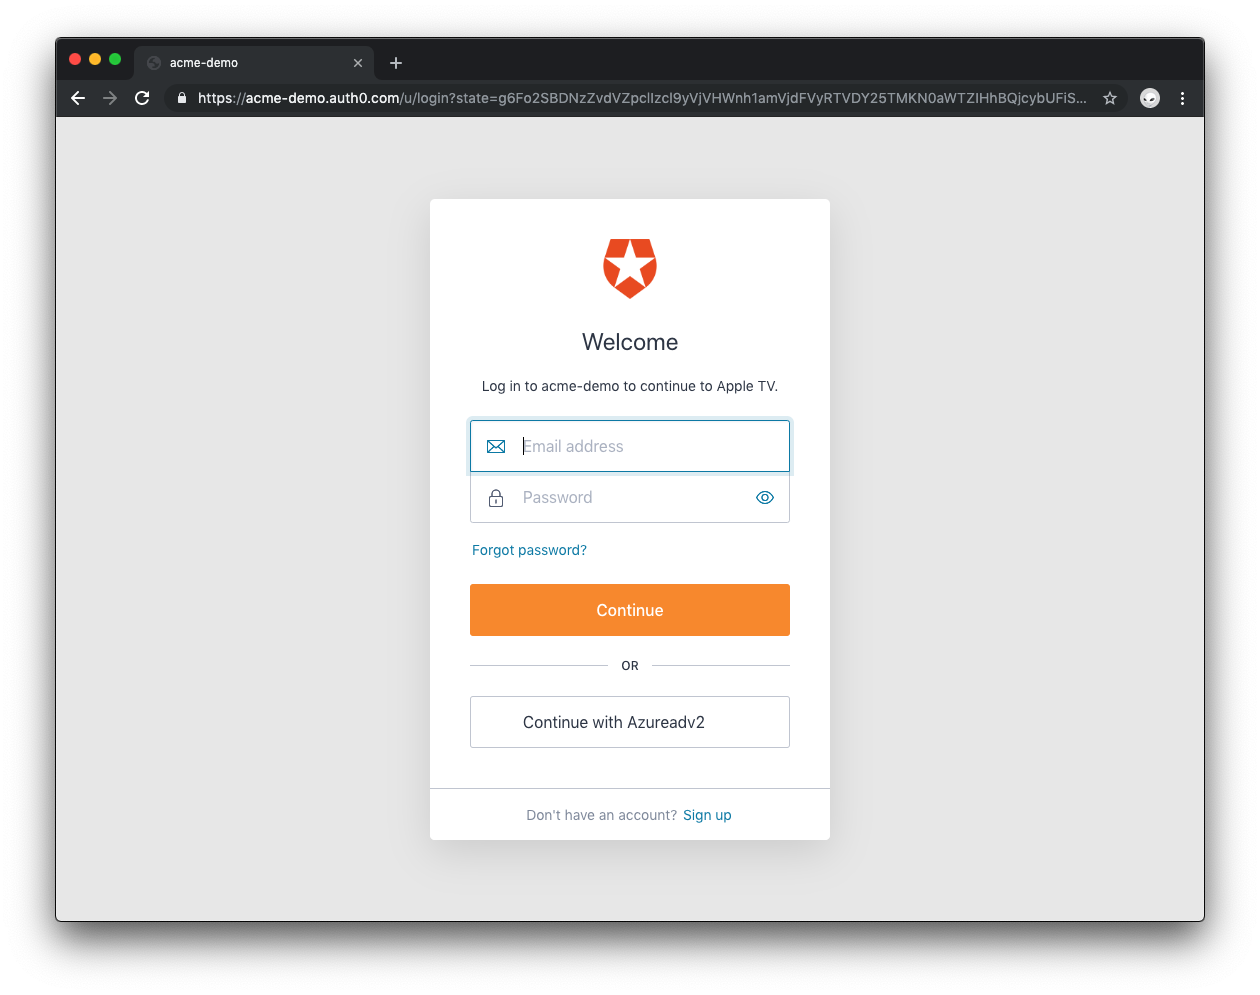 Auth0 Device Flow: user authentication